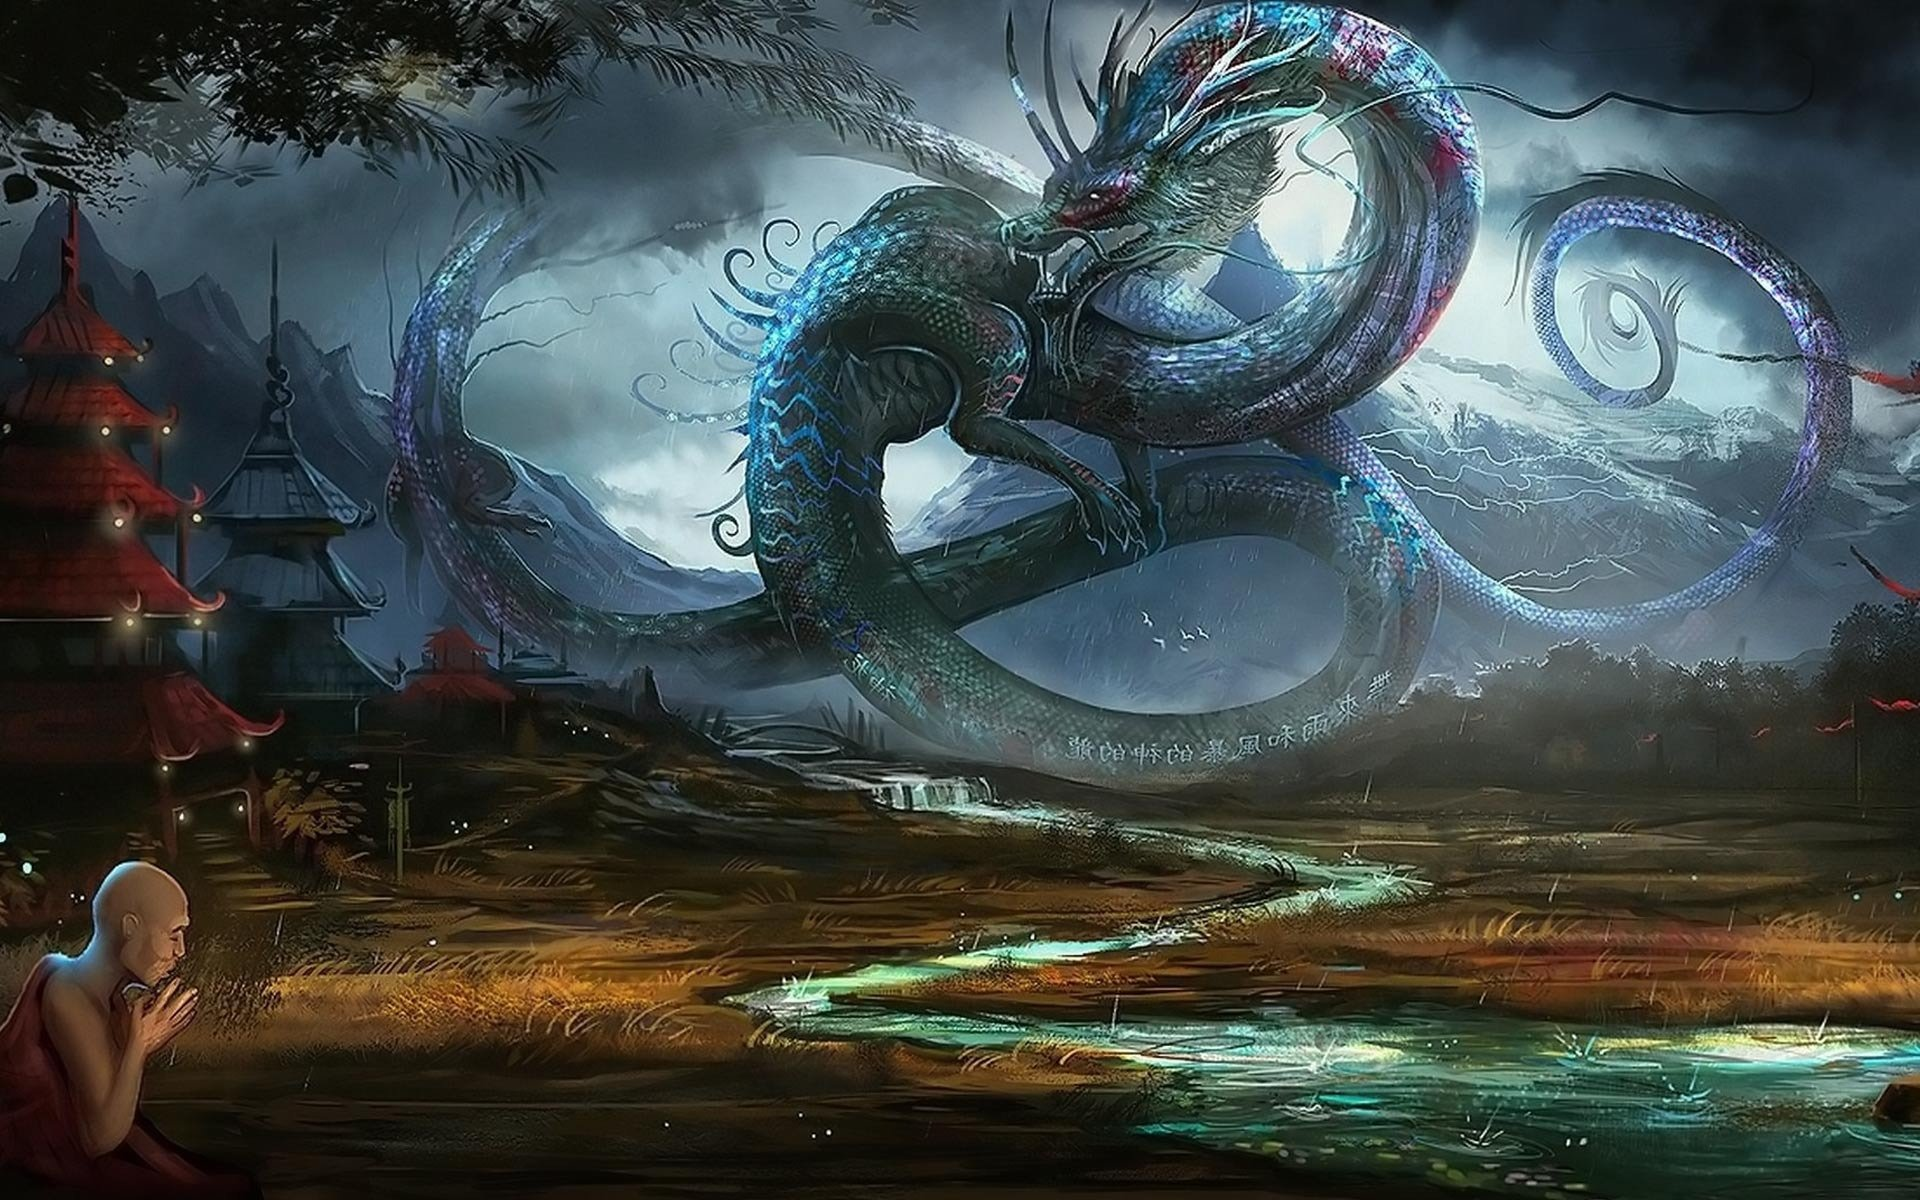 Dragon 壁纸 And 背景  1366x768 ID480320